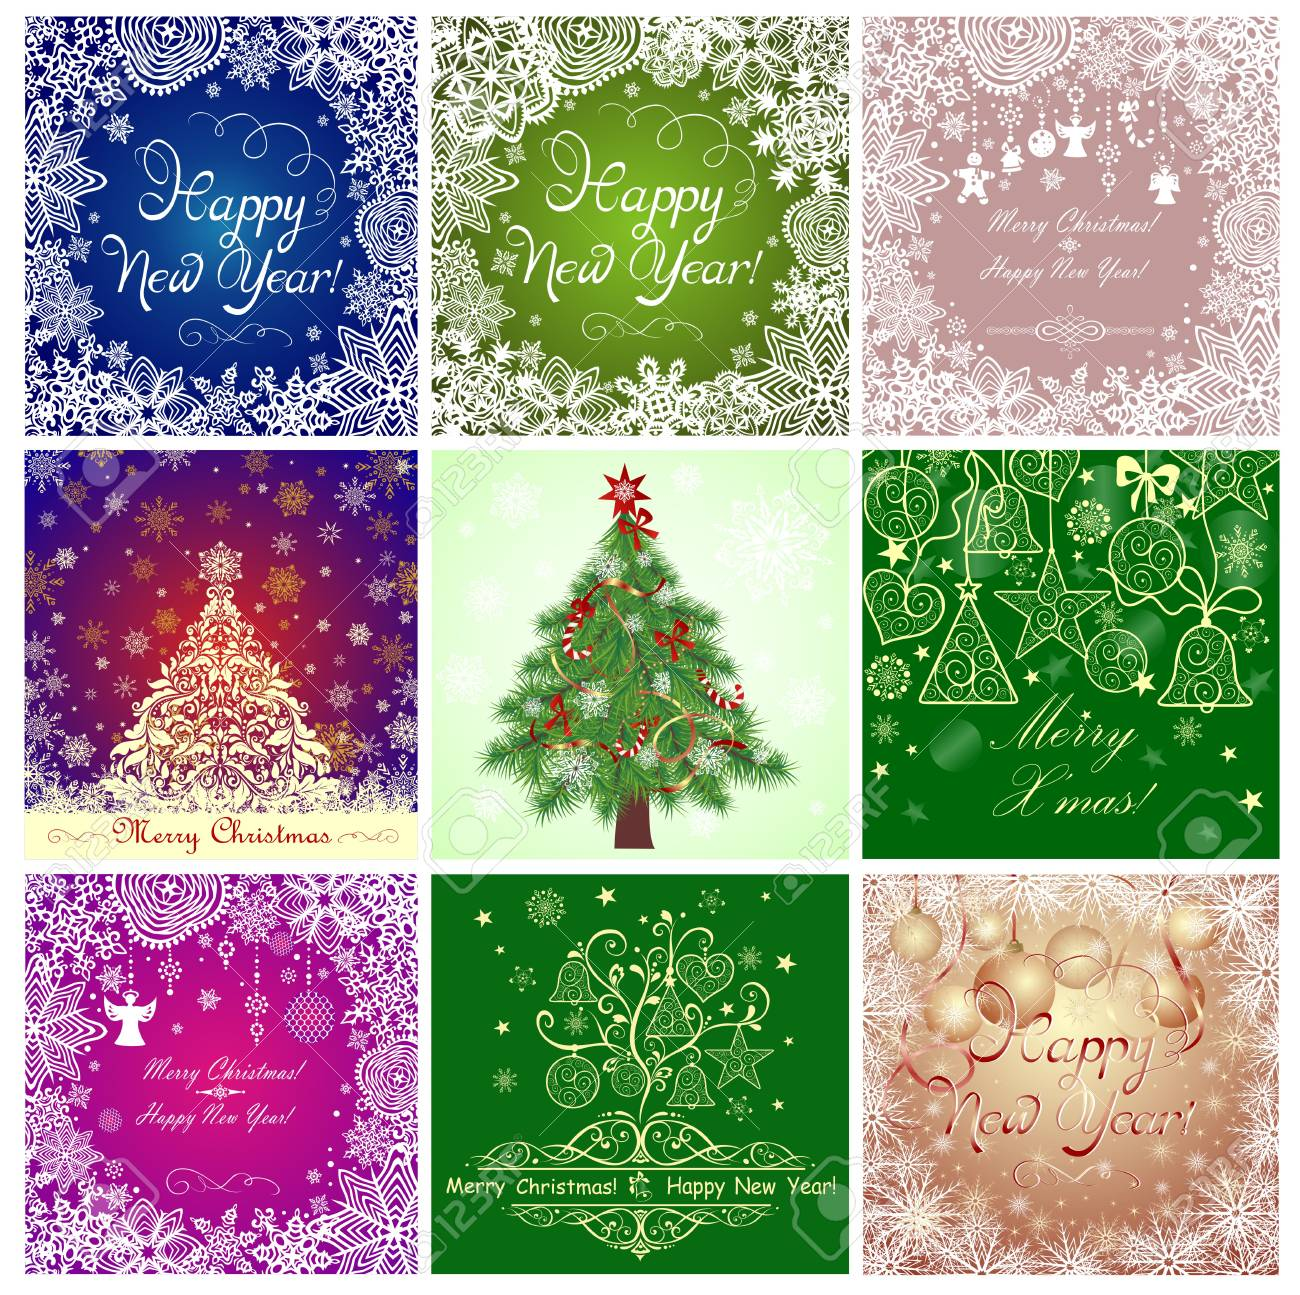 Greeting Cards For New Years Holidays Royalty Free Cliparts Vectors